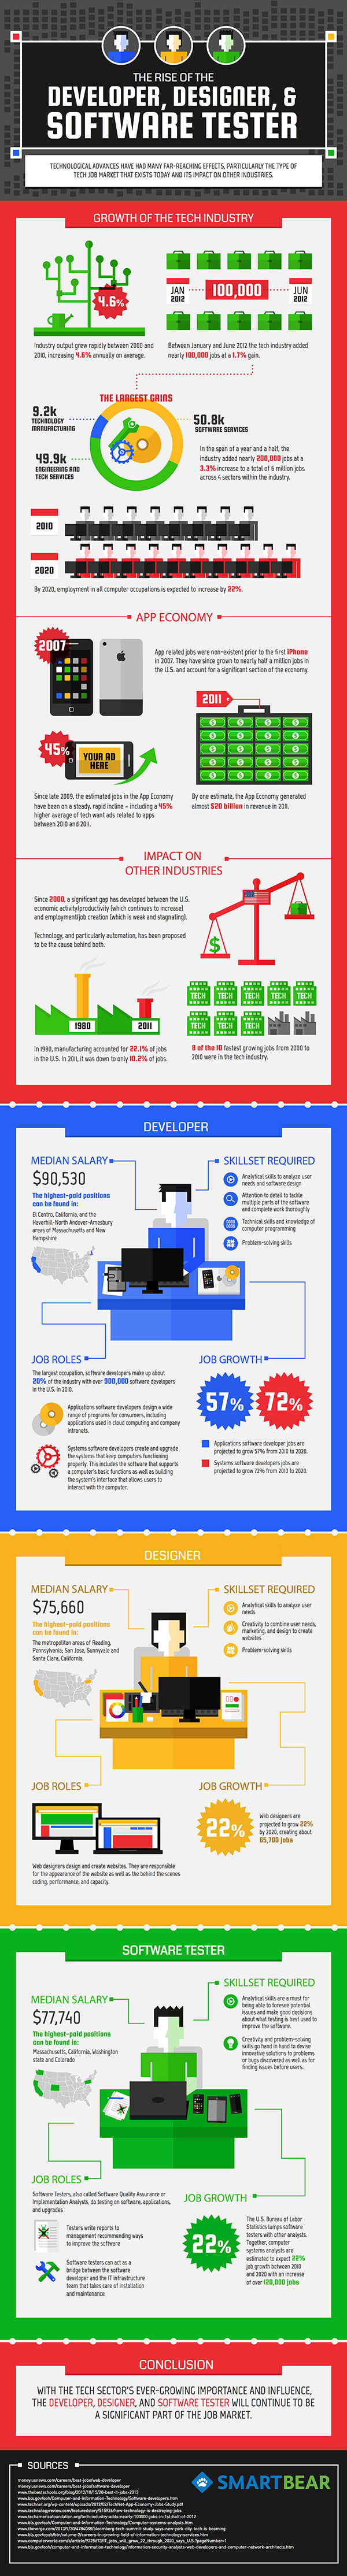 Developers Designers and Software Testers-Infographic